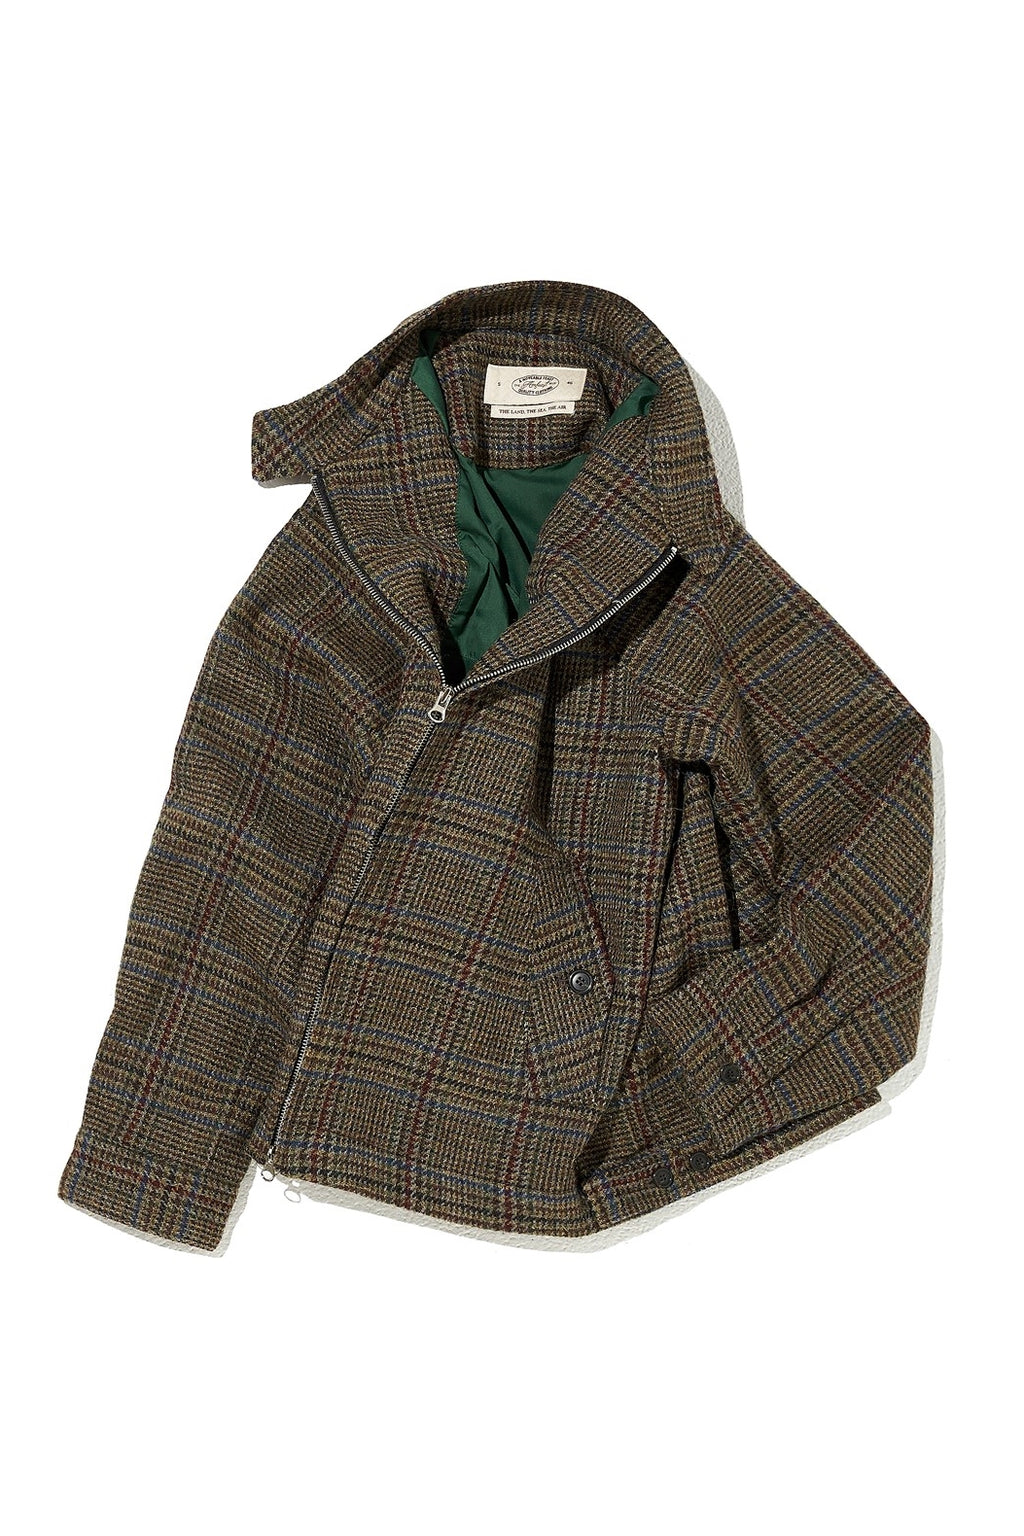 19 FW EASY SWING JACKET WOOL MAGEE FABRIC